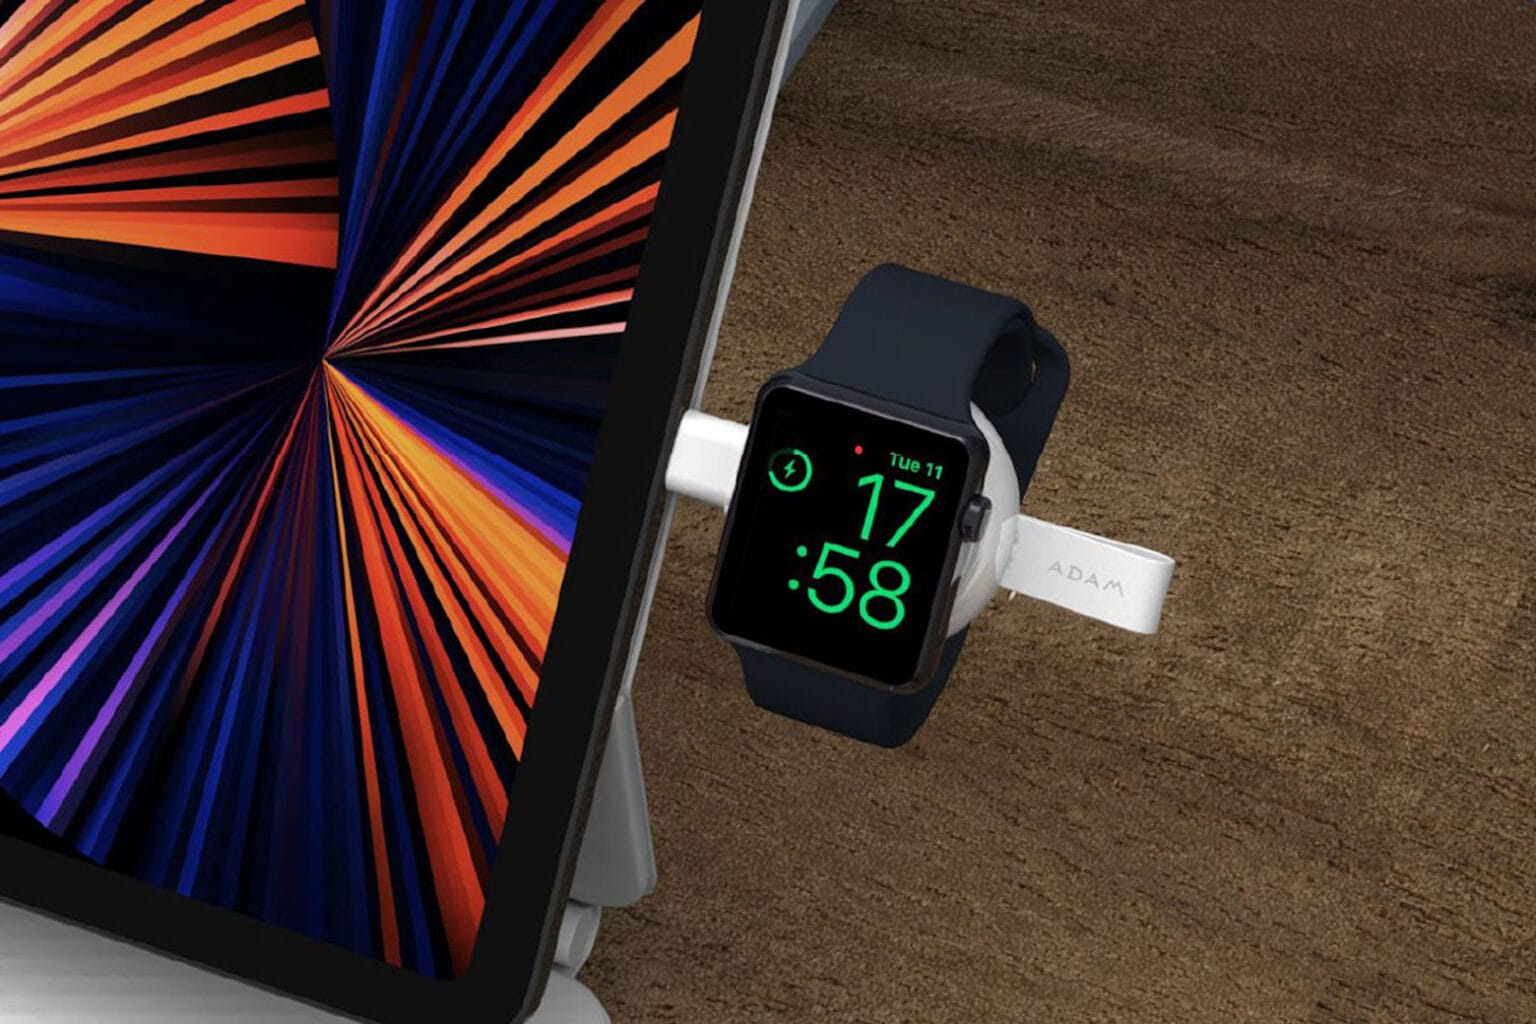 It's time to get a charger that's right for your Apple Watch.